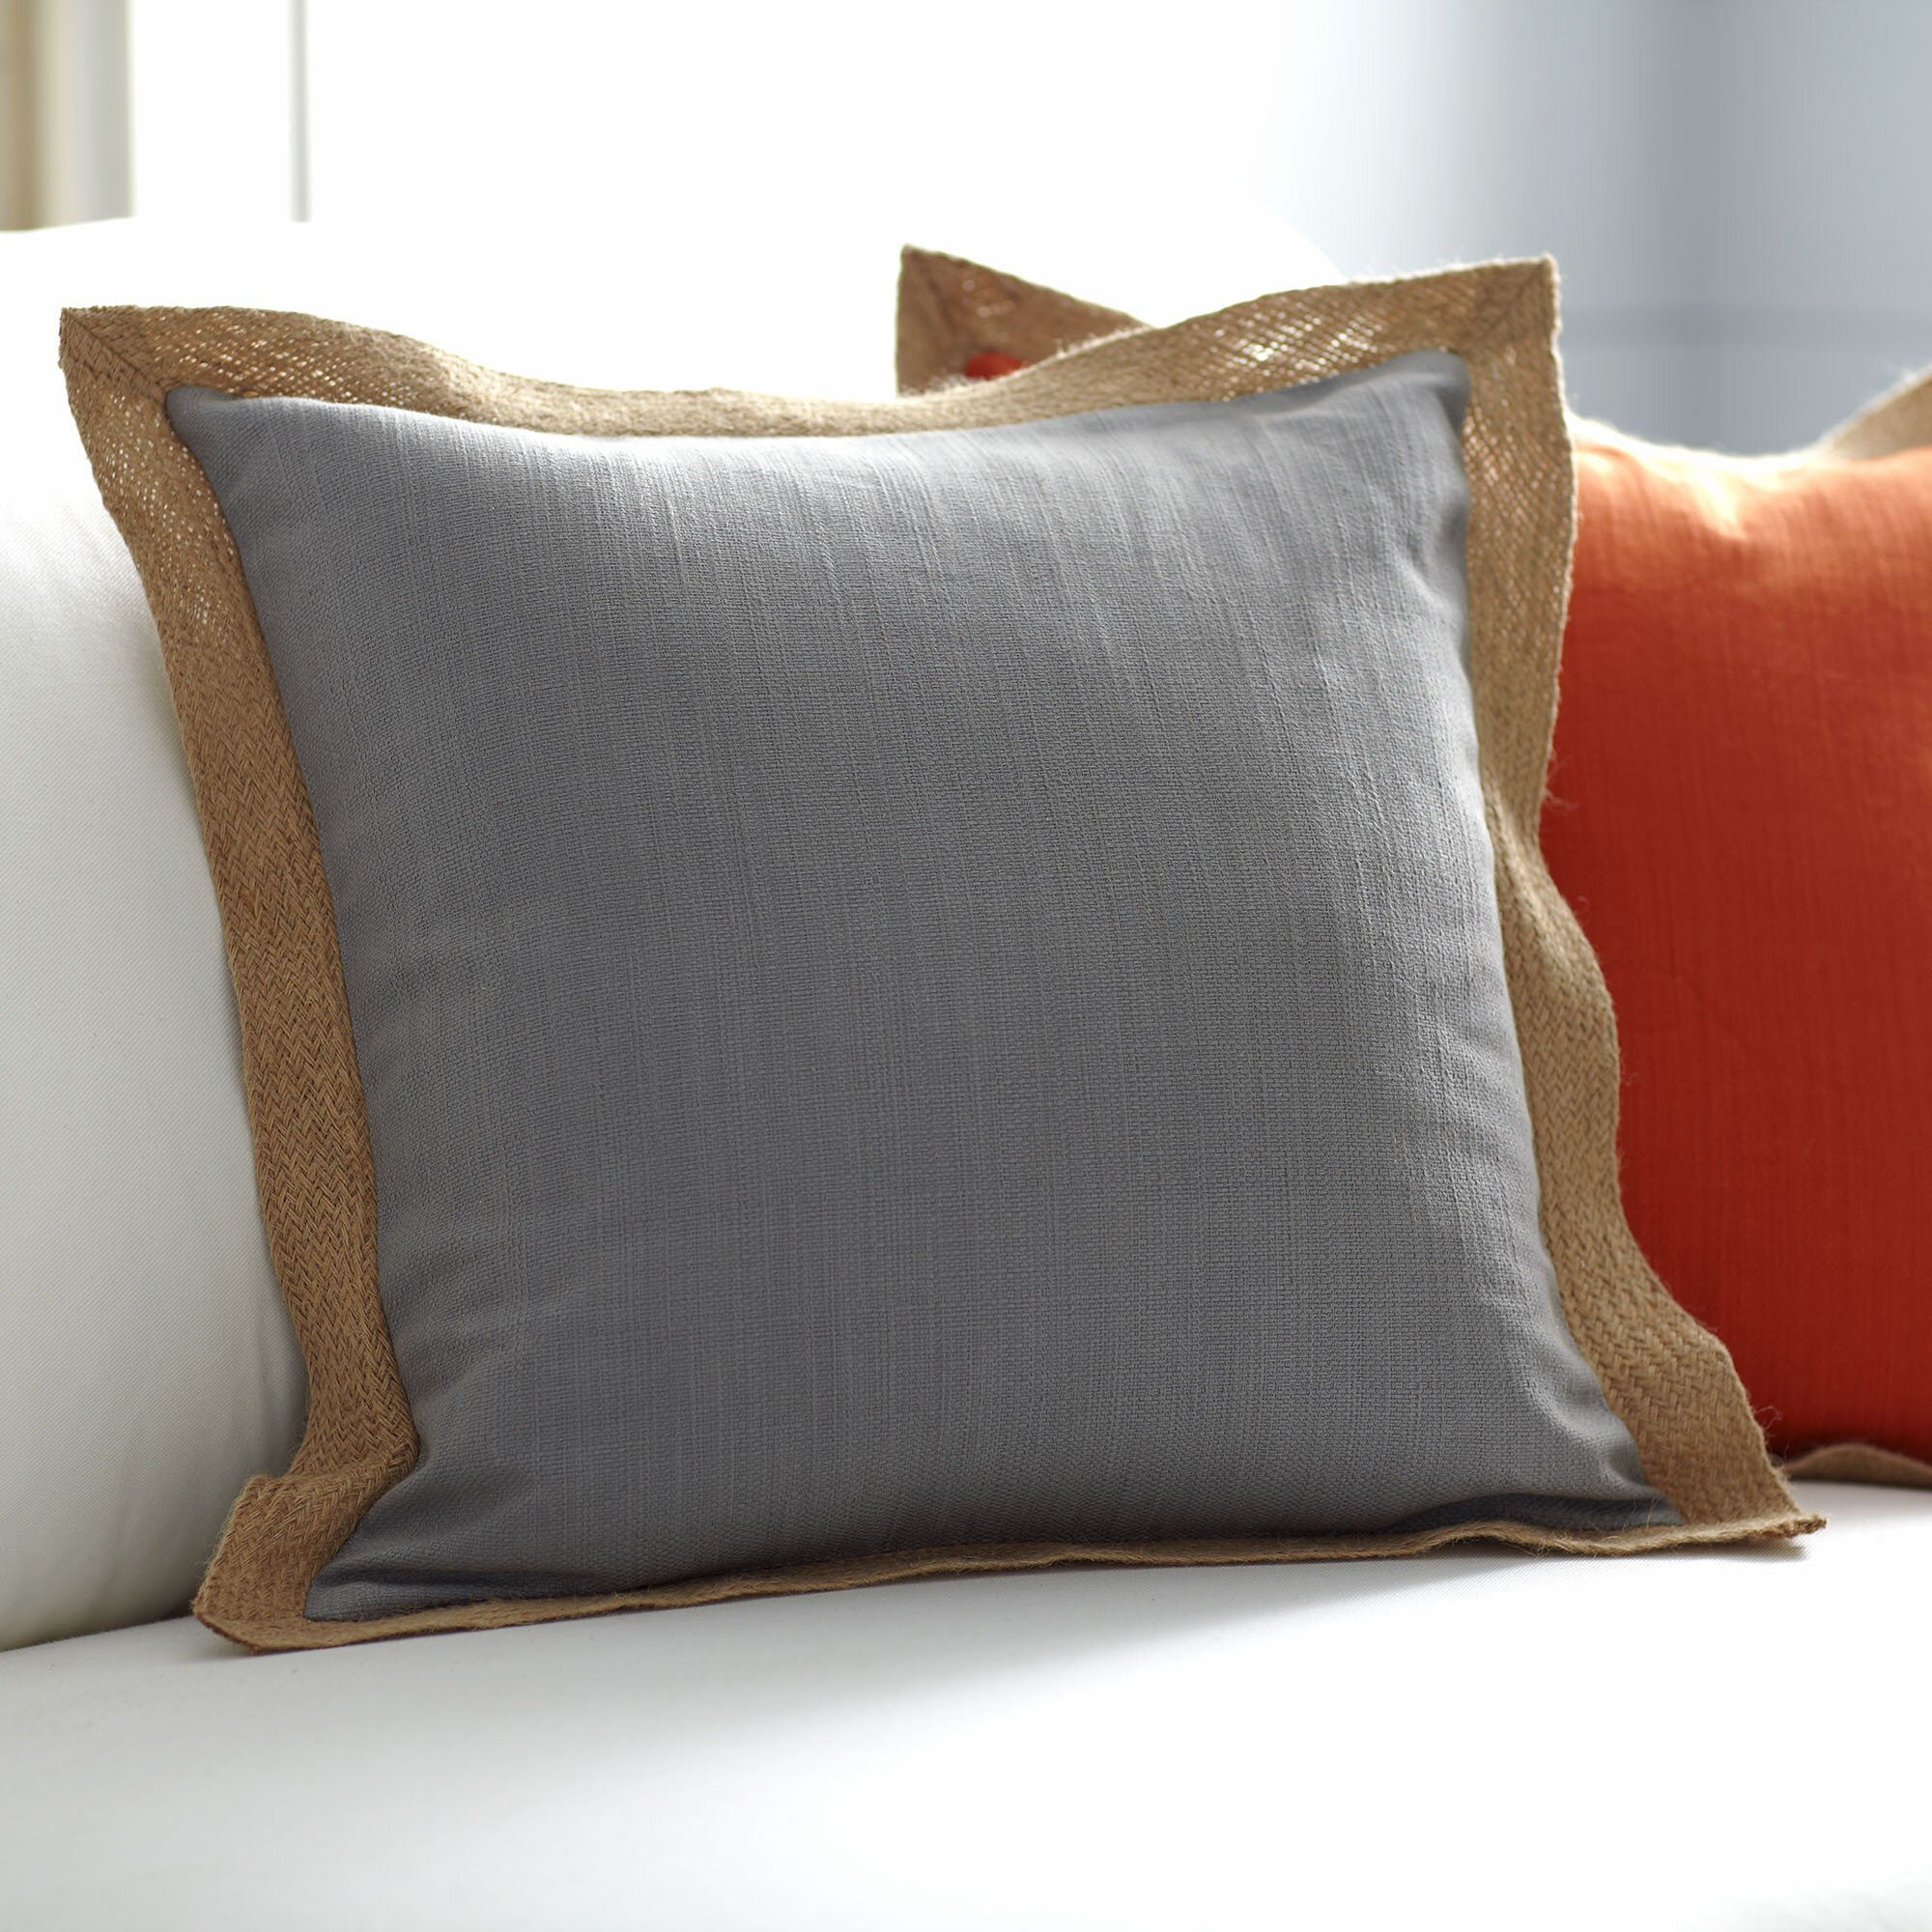 Decorative Pillows Trim : Birch Lane Cadence Jute Trim Pillow Cover & Reviews Wayfair